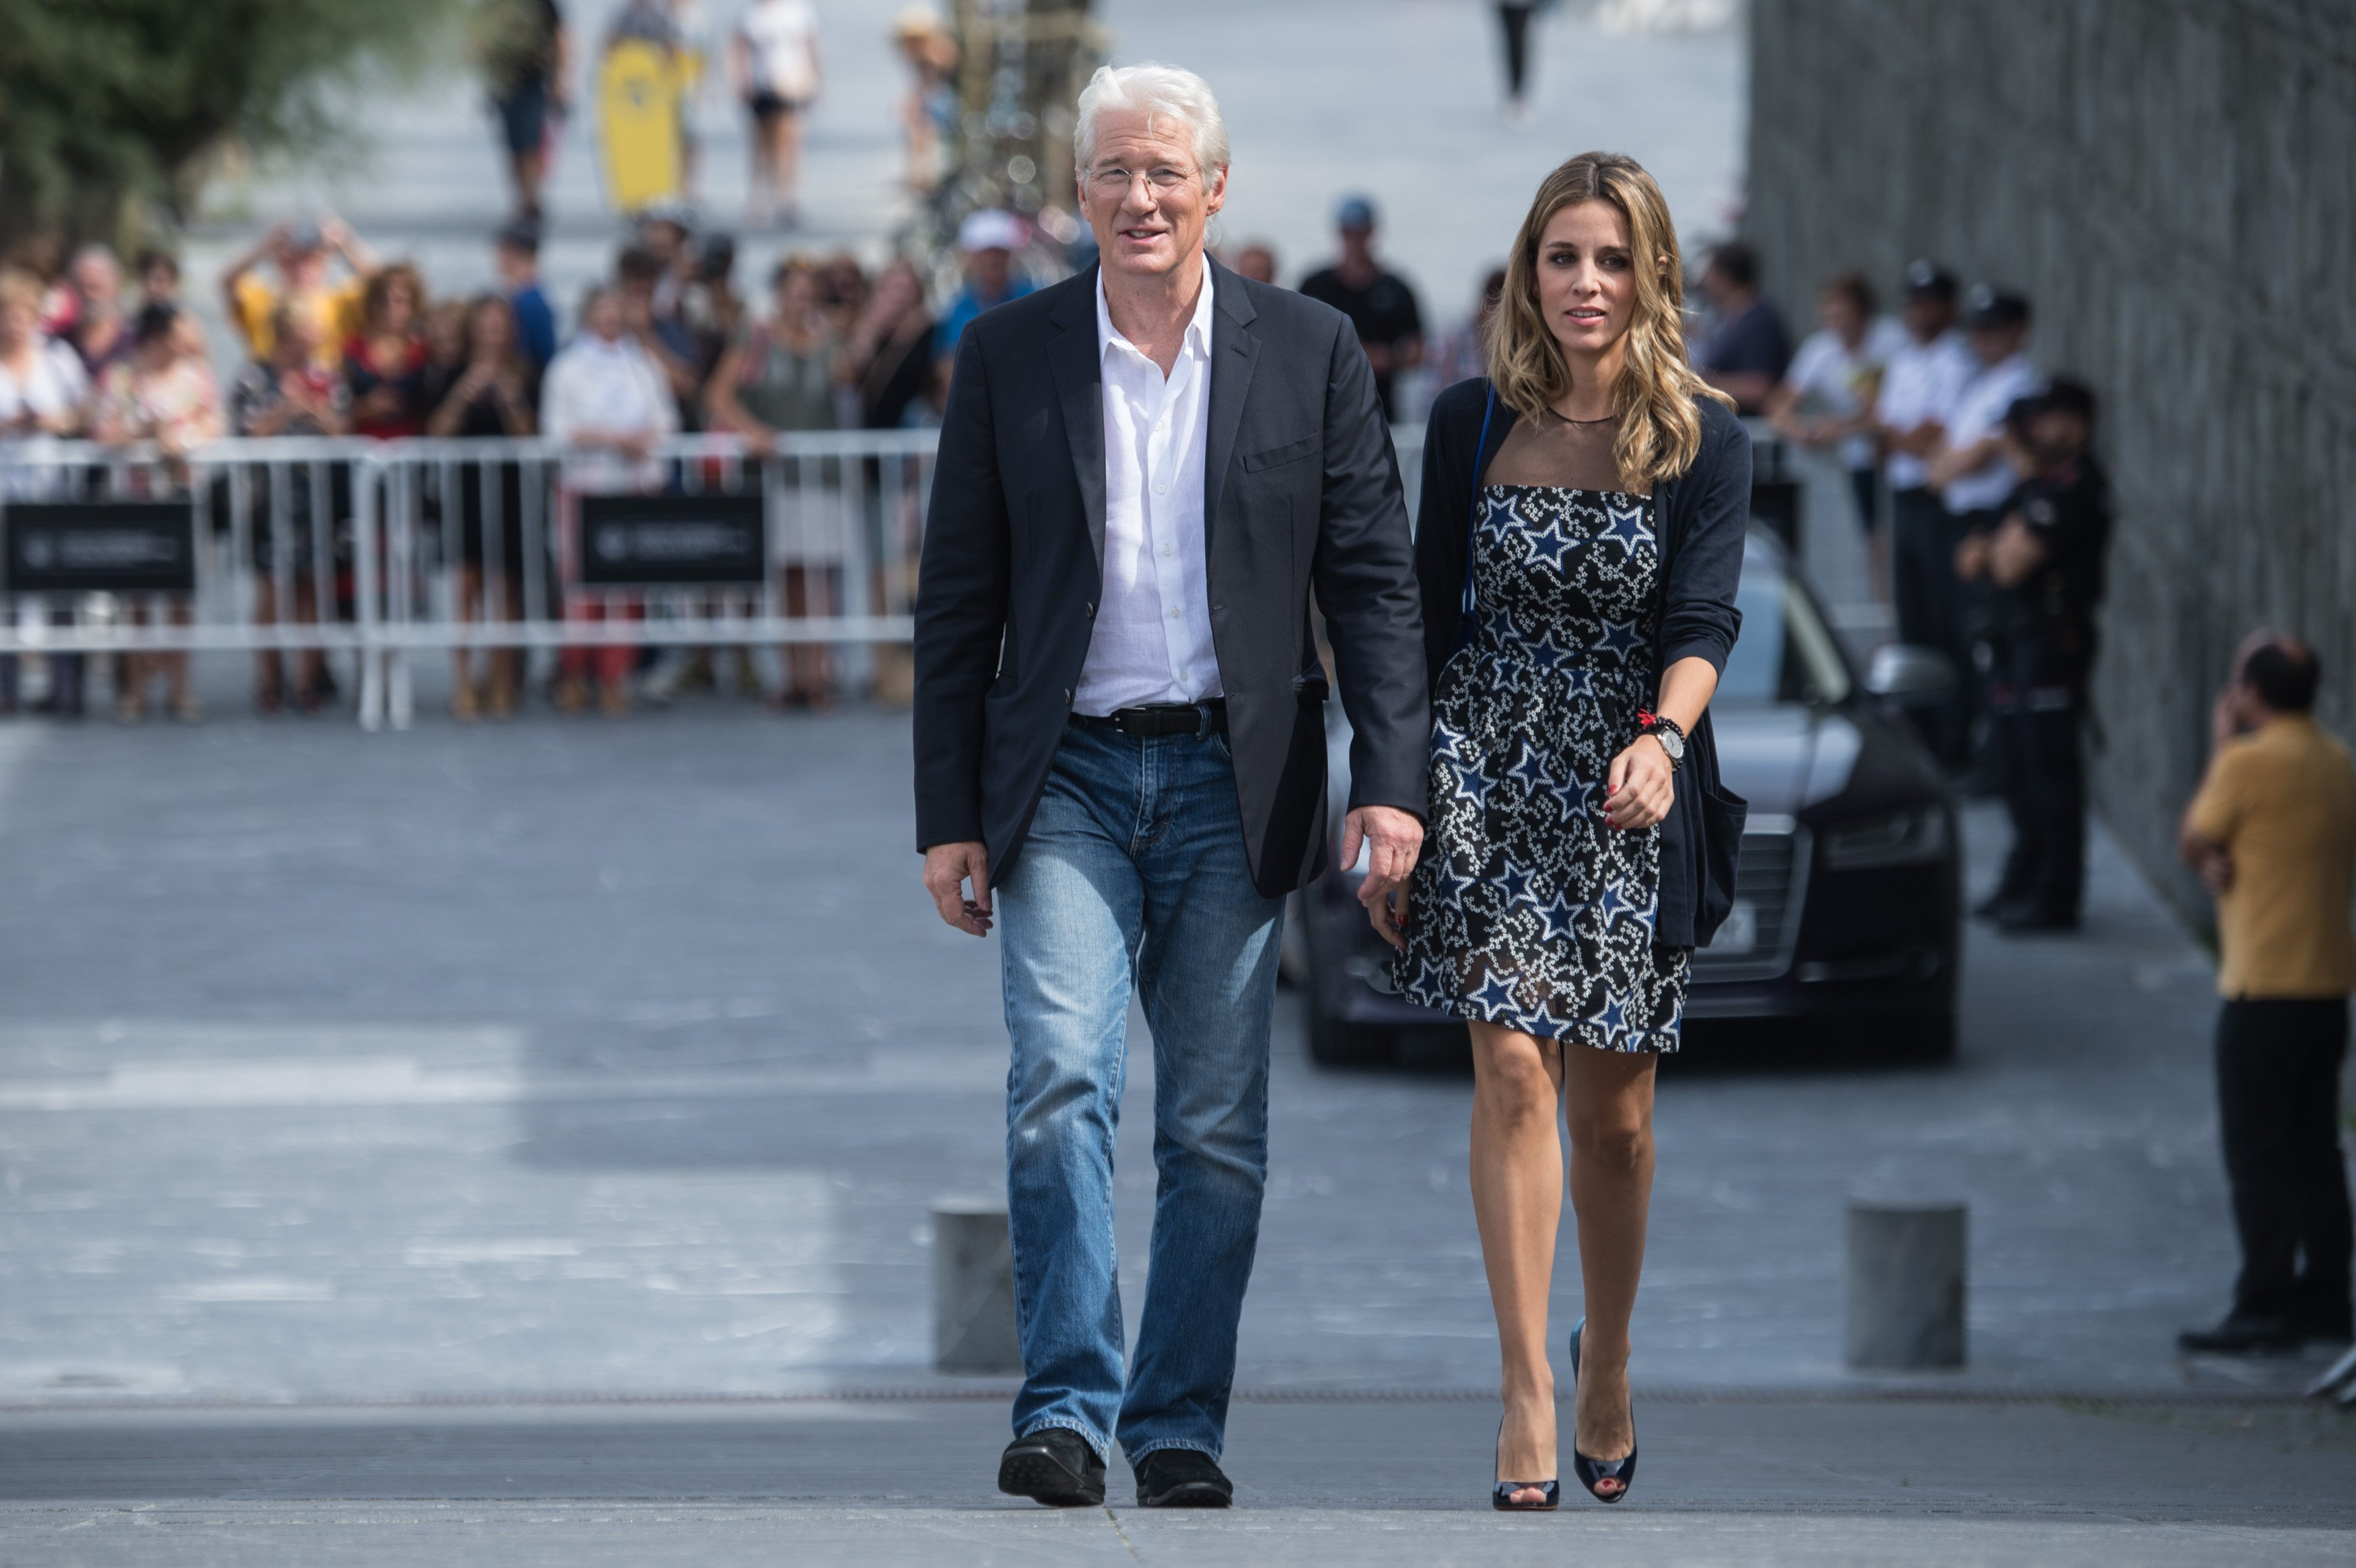 Richard Gere and Alejandra Silva heading to Diner in New York in November 2018 | Photo: Getty Images